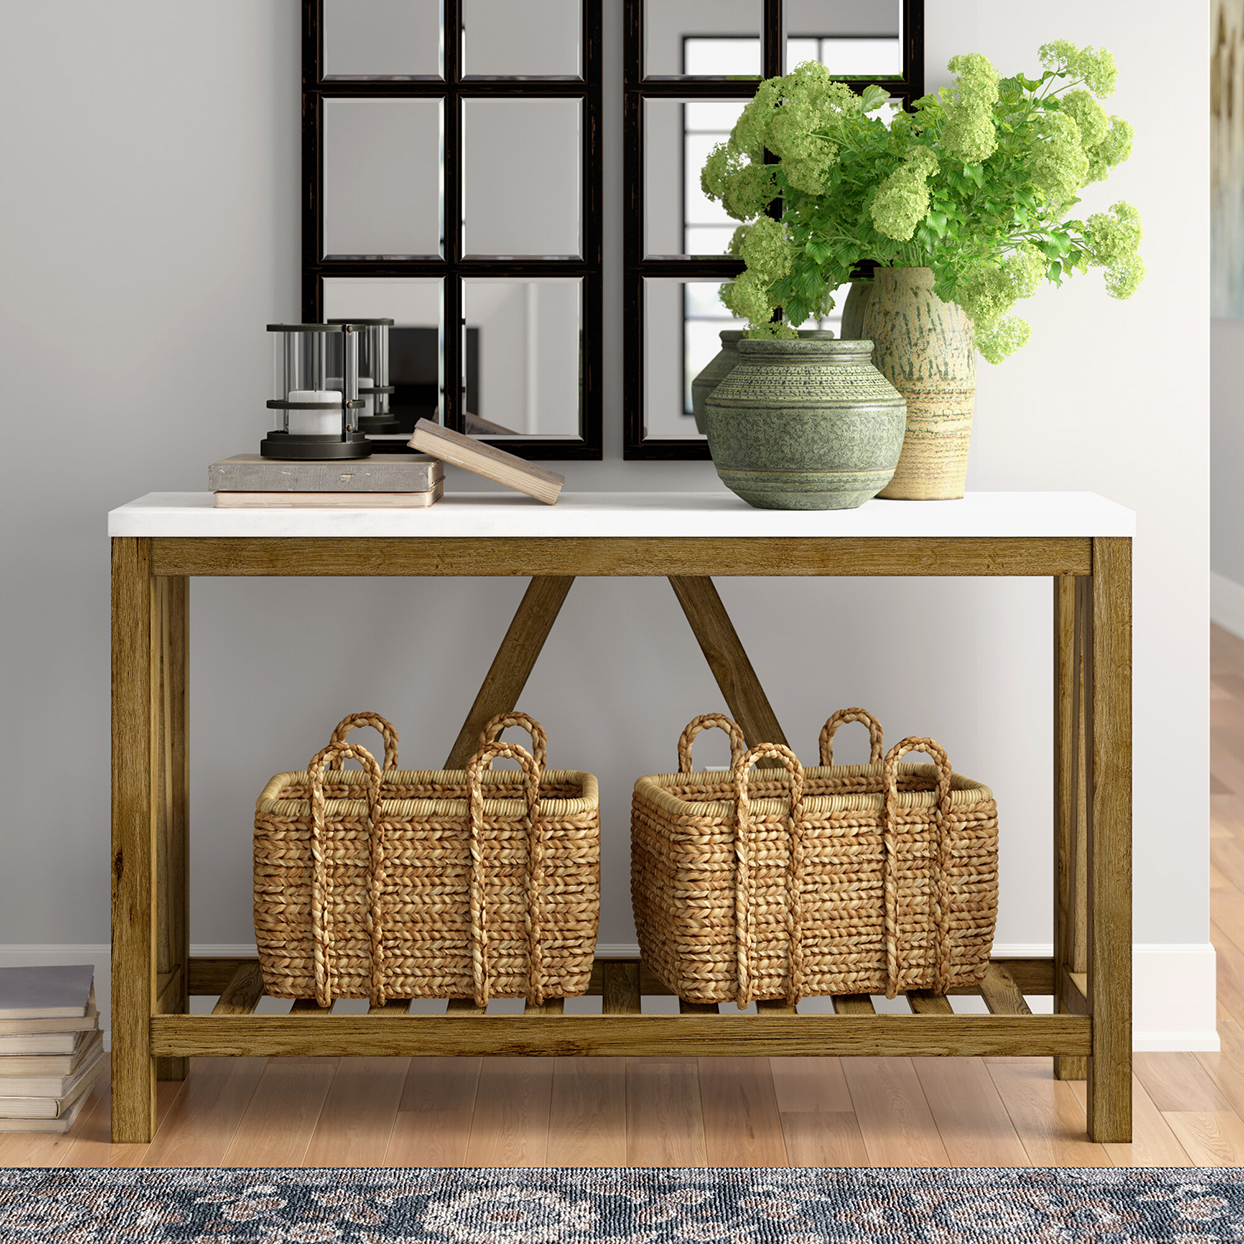 wood and marble console table with baskets and decor on top